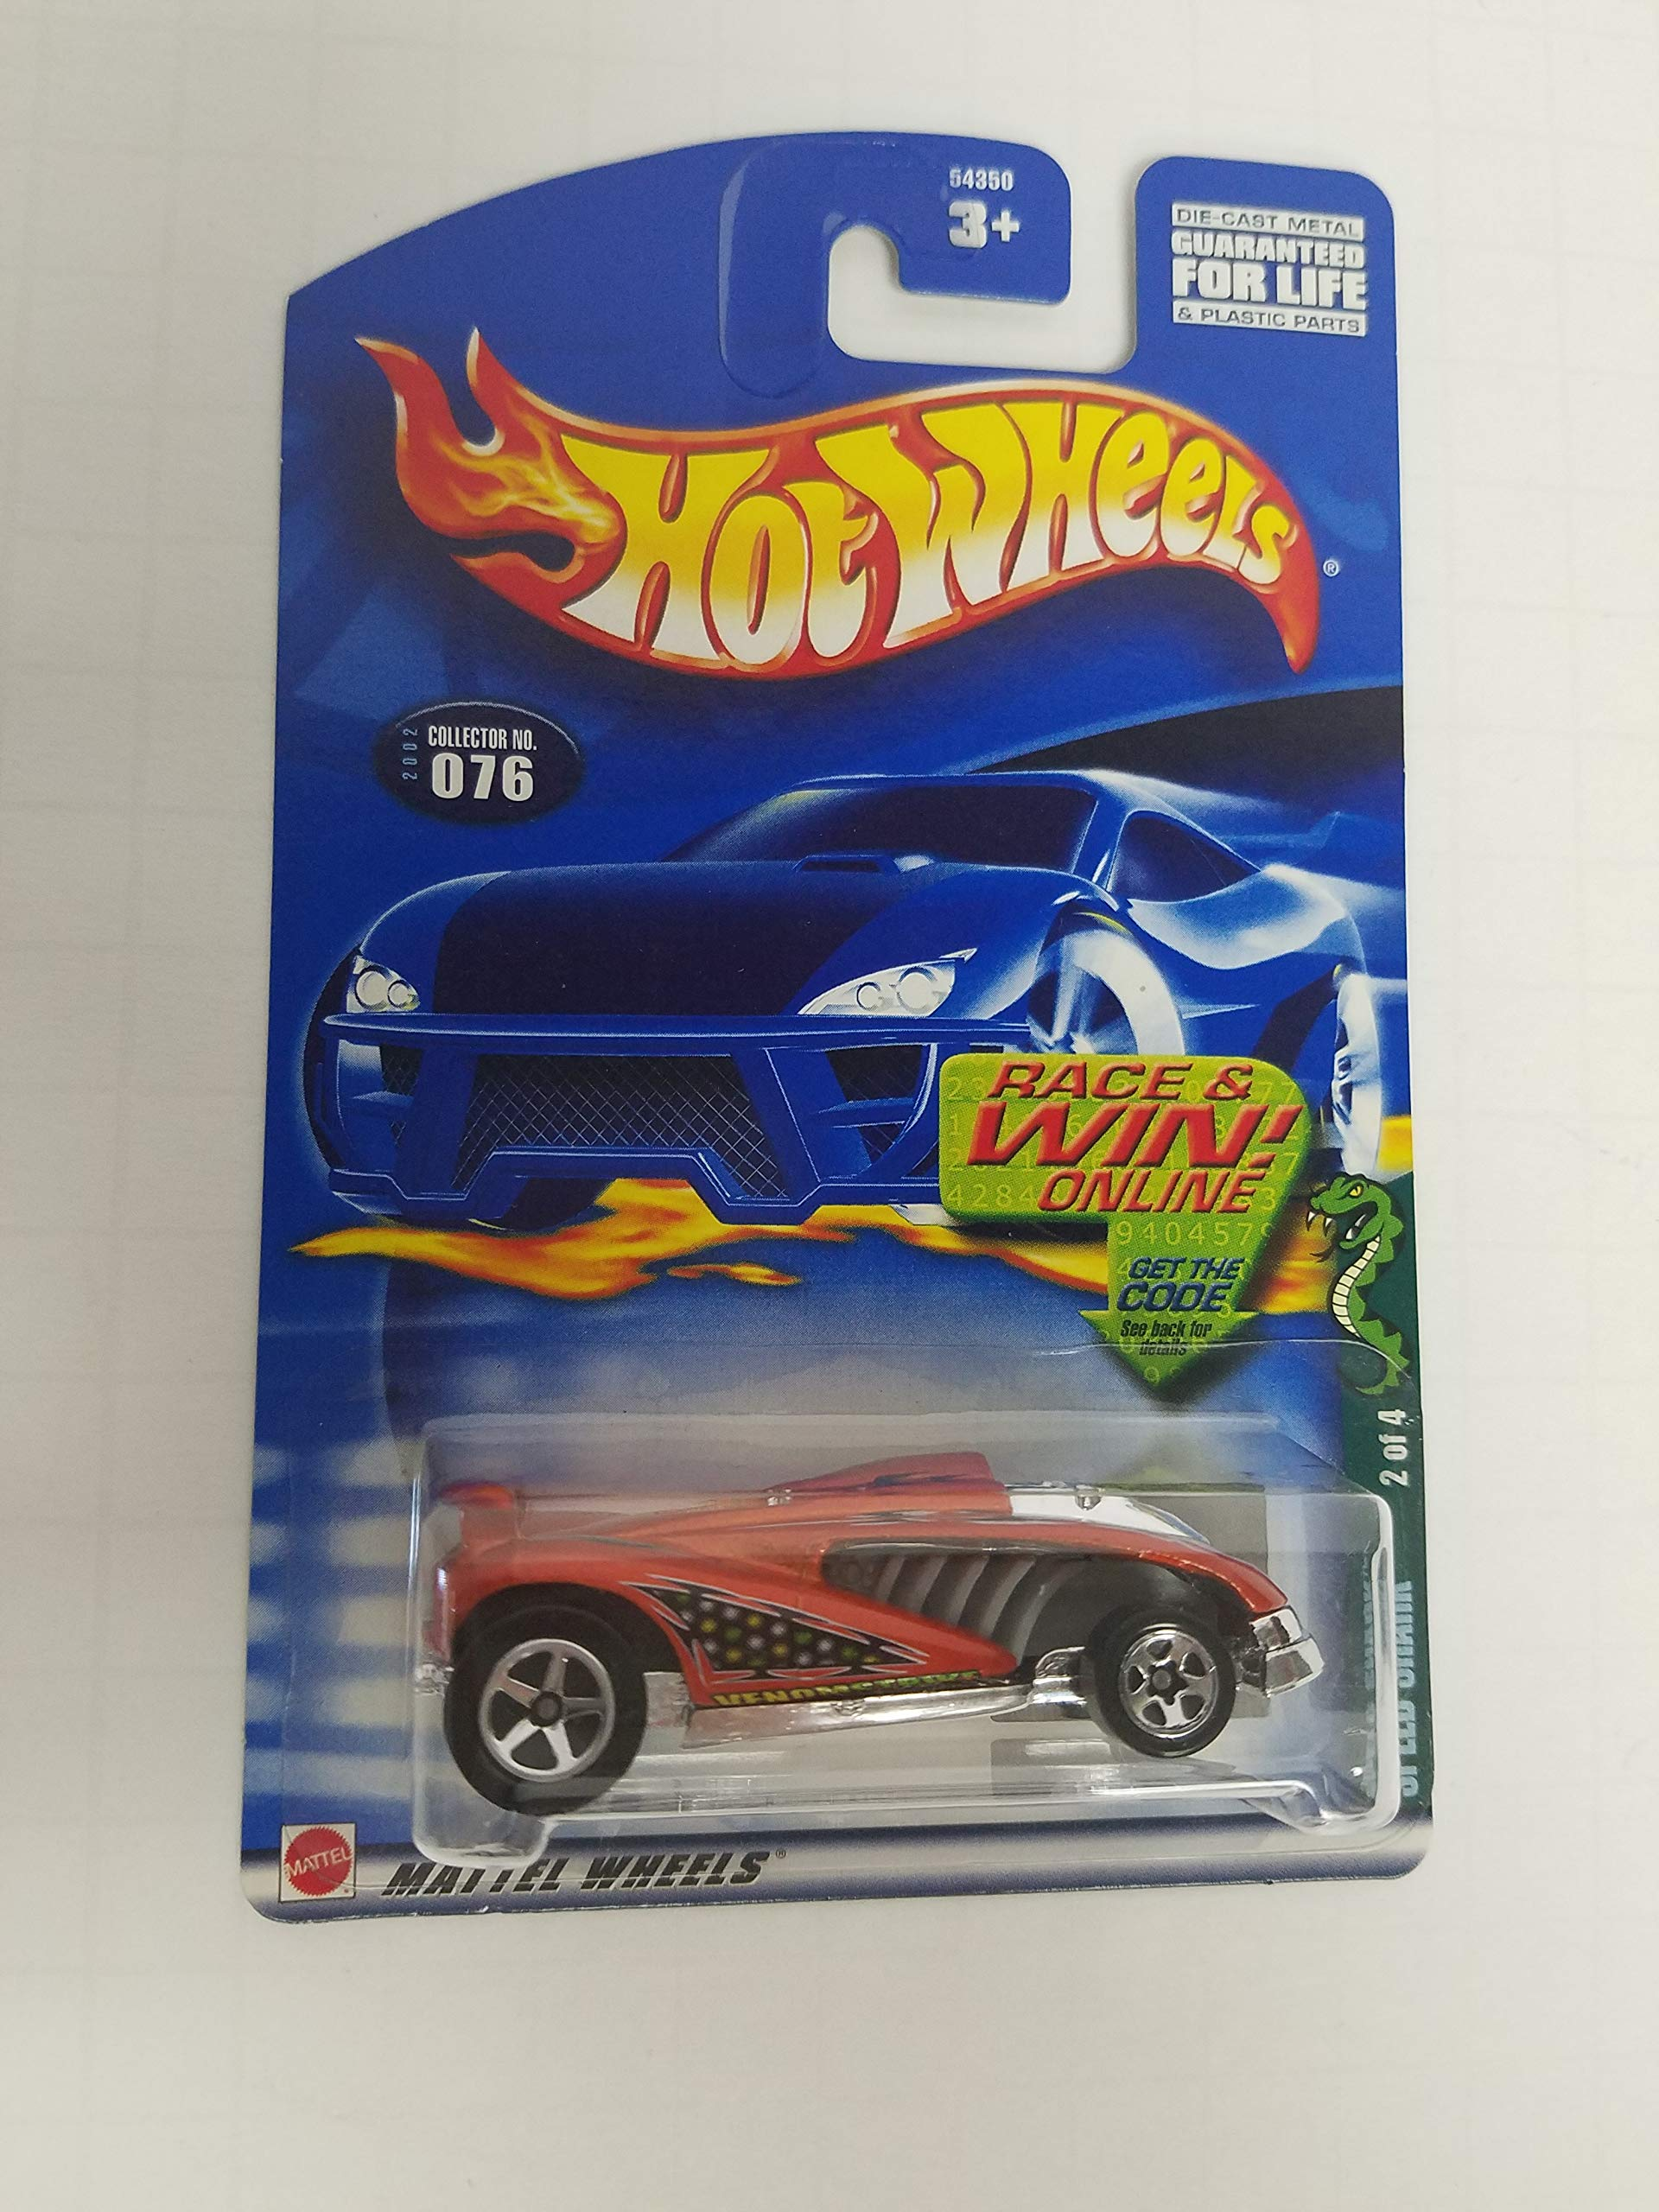 Speed Shark Hot Wheels 2002 diecast 1/64 scale car No. 076